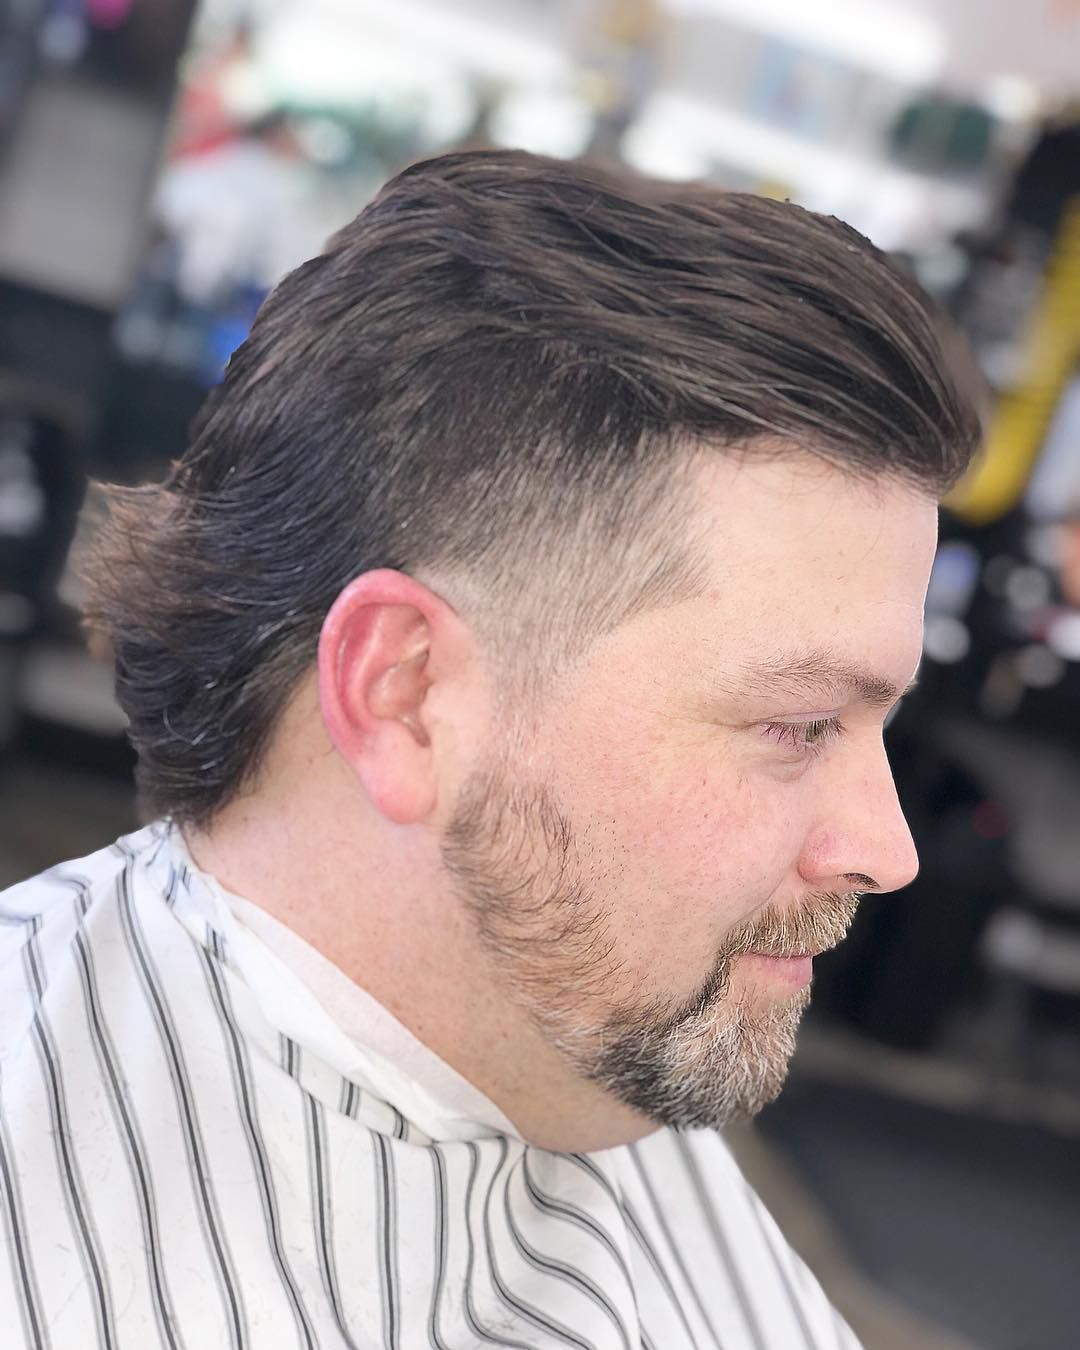 15 Mullet Hairstyles For Men 2019 Haircut Mullet Mullethaircut Mullethairstylemens Mullet Hairstyle Mens Hairstyles Mullet Haircut